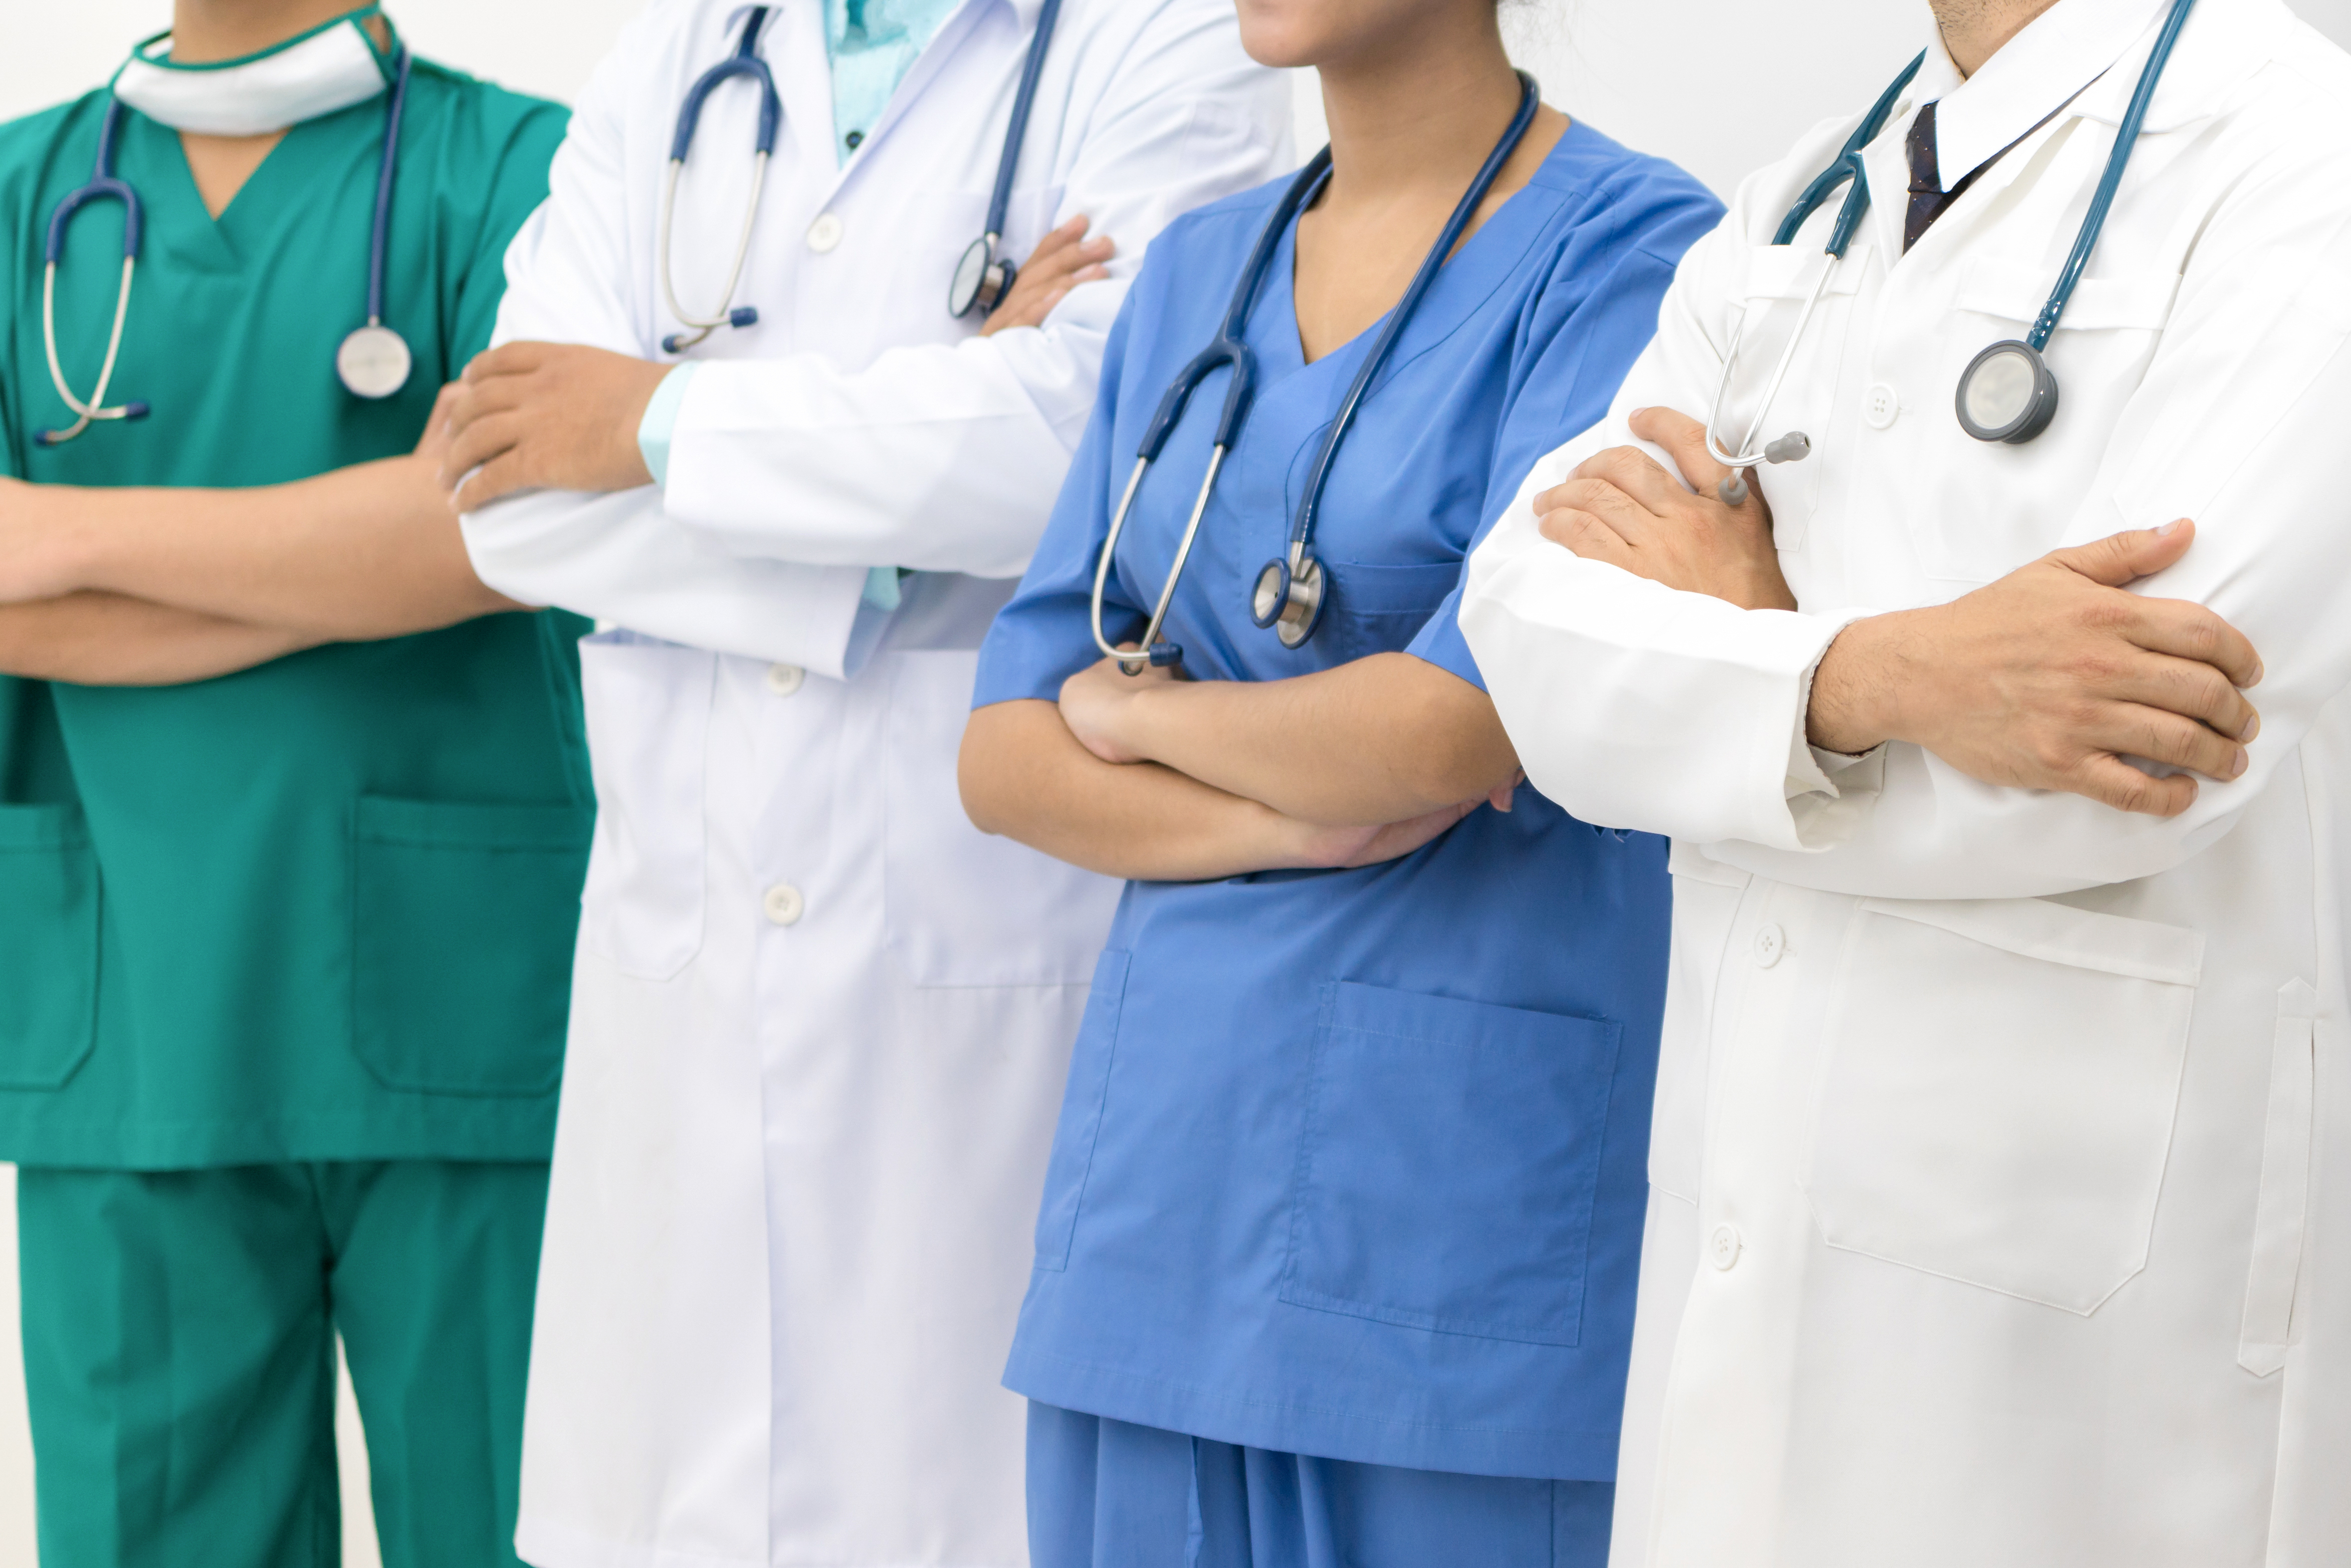 Why Healthcare Providers Need To >> Healthcare Providers Find Flexibility And Work Life Balance With New